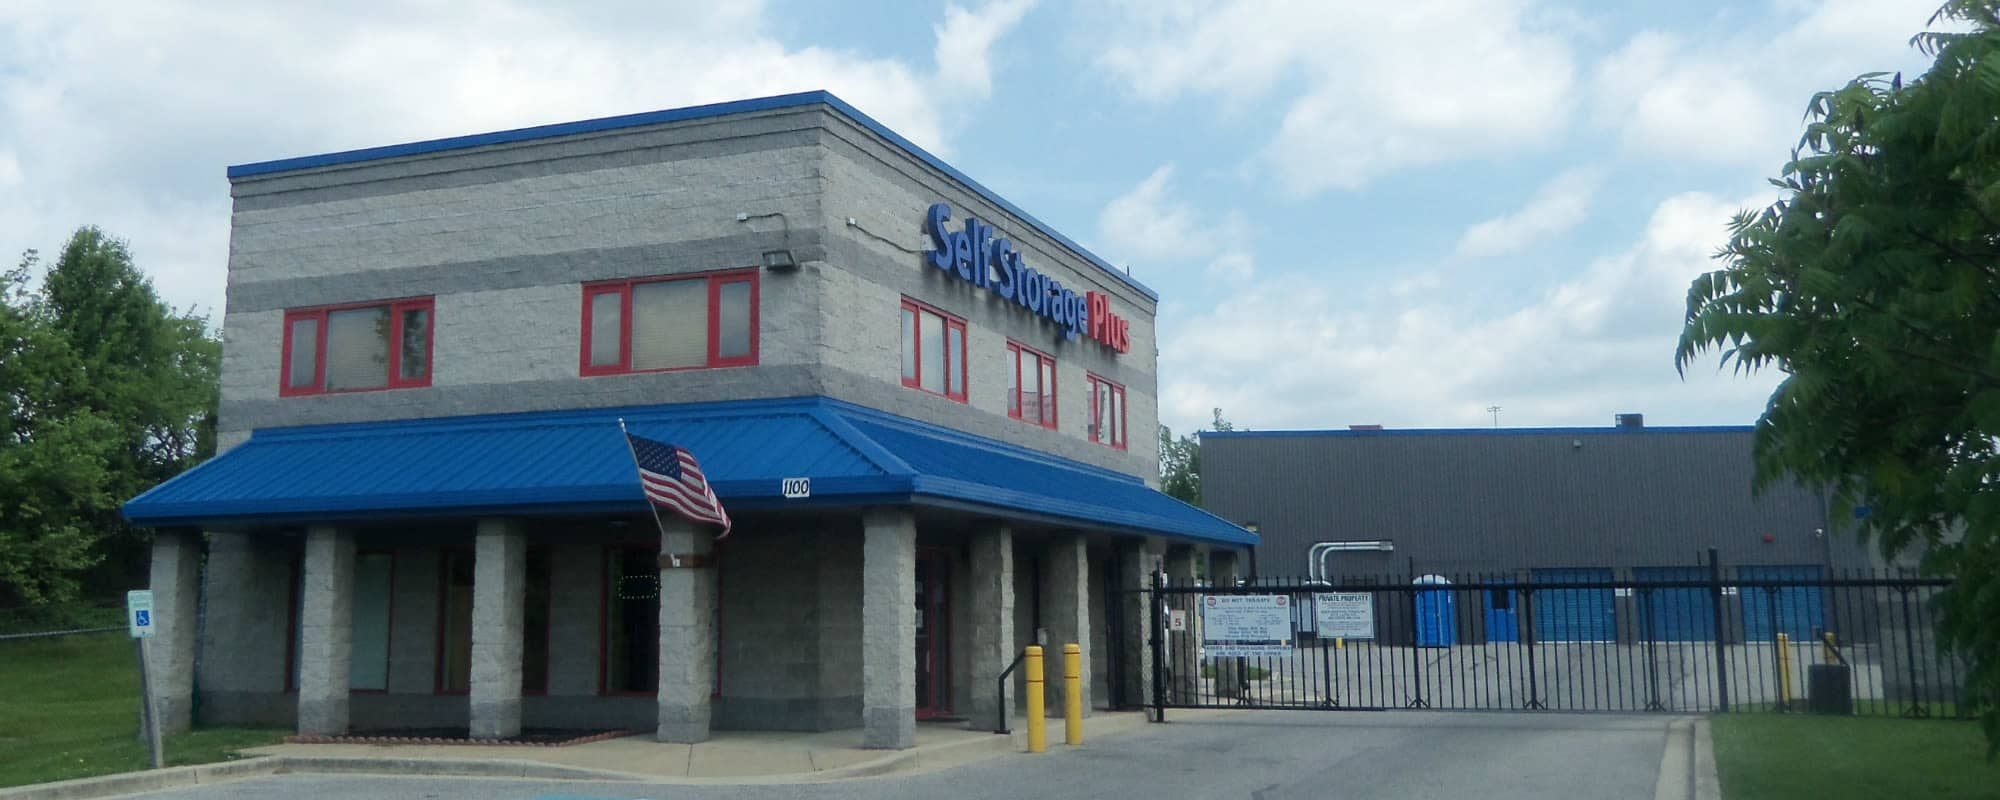 Self Storage Plus in Baltimore, MD